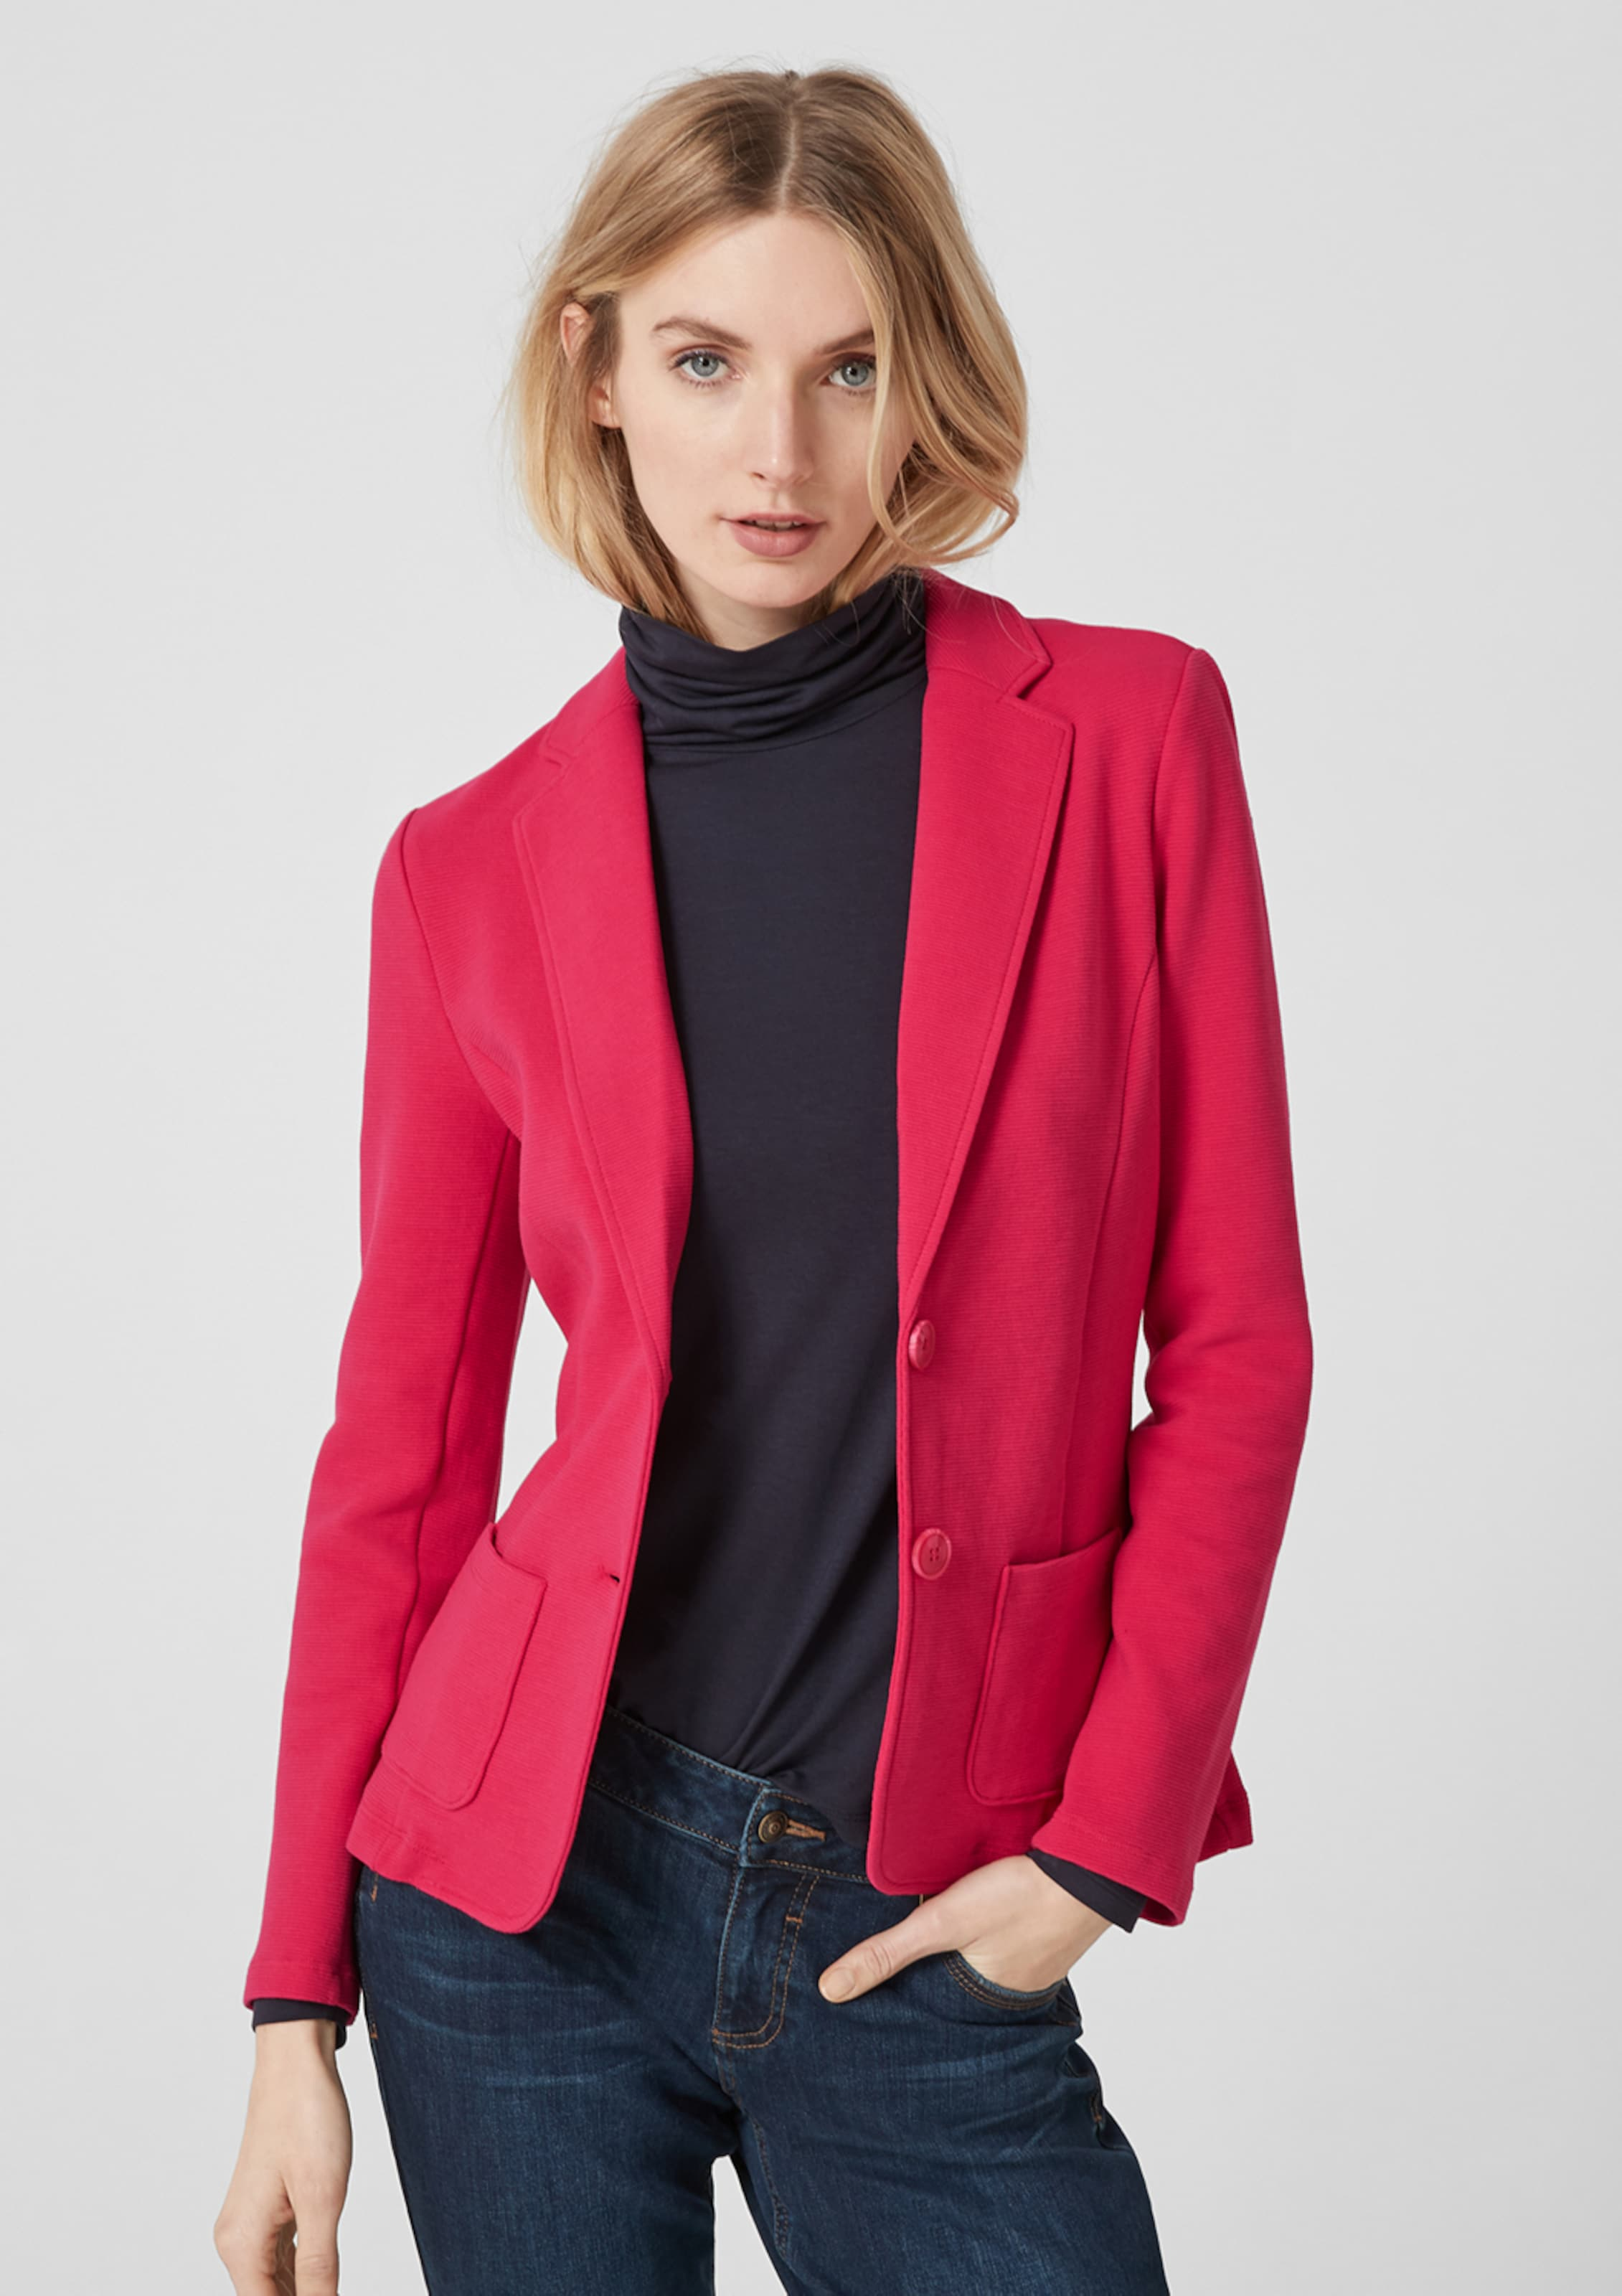 Himbeer Label In oliver Red Blazer S wkTlOXuPZi